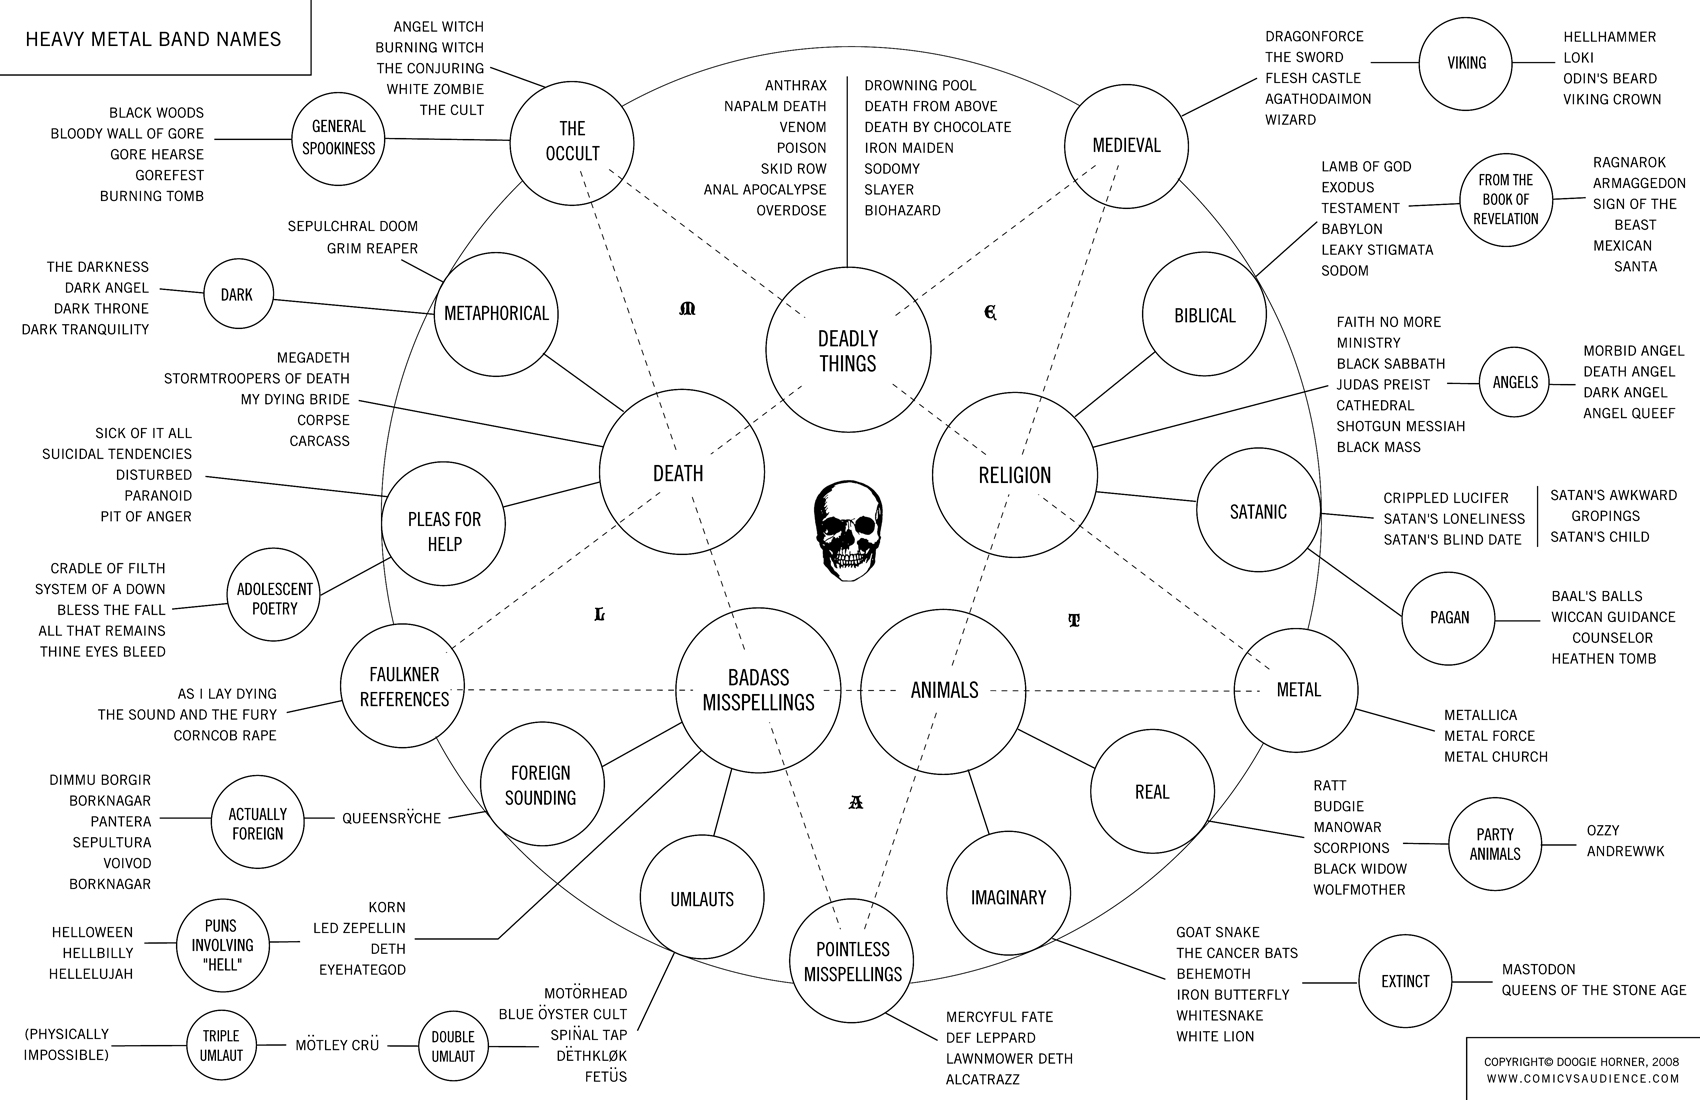 Heavy Metal Band Name Flow Chart - Click To View Image